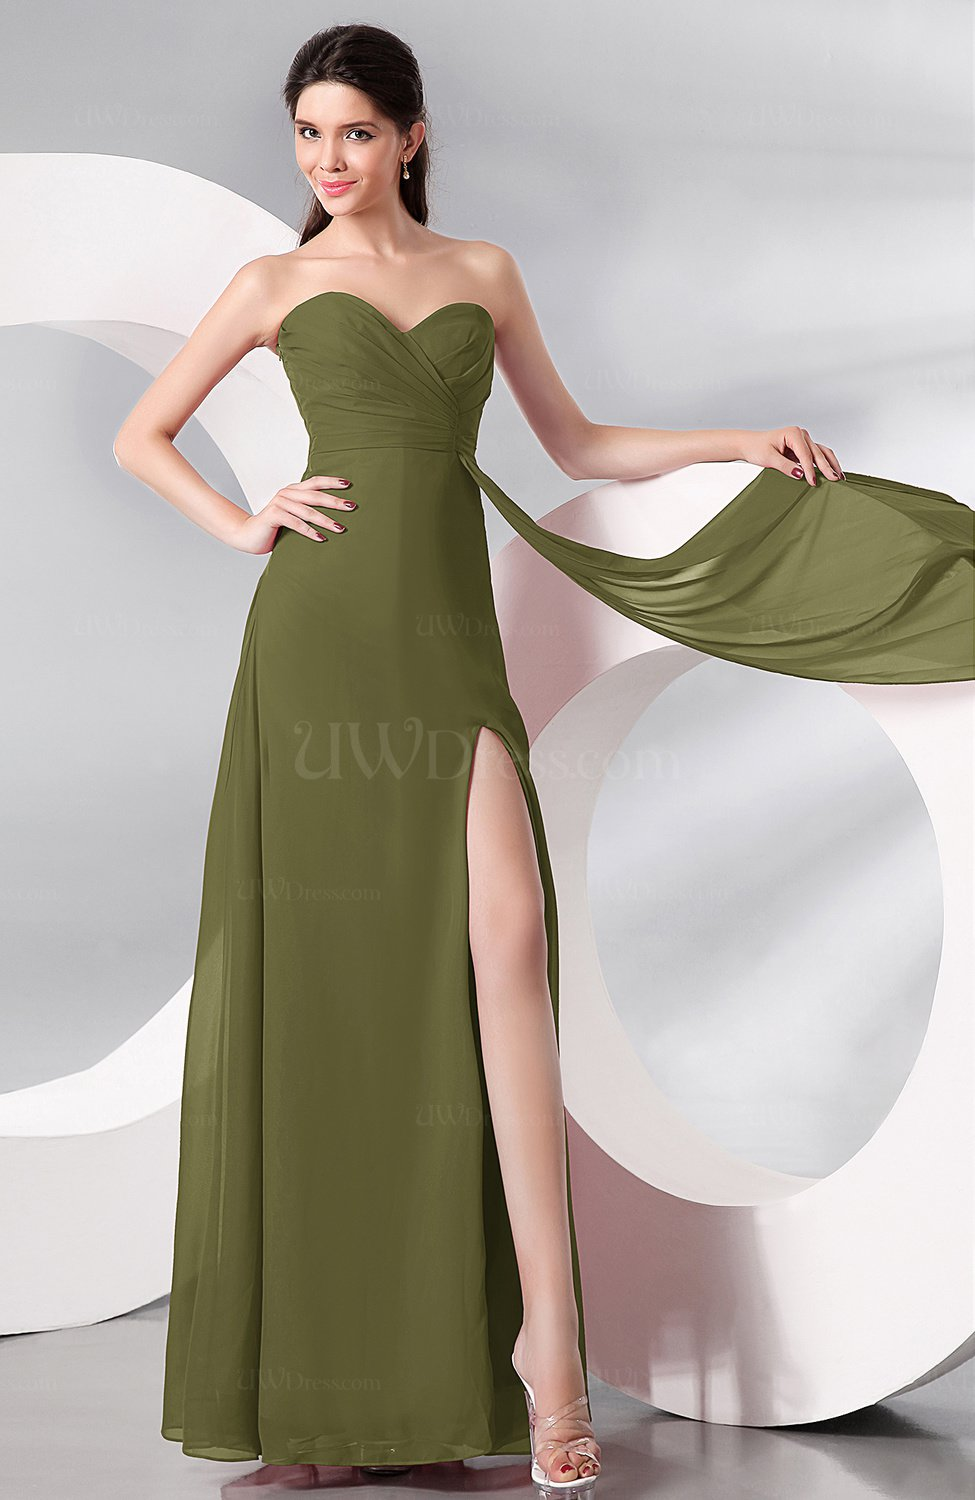 87790eab6f Olive Green Plain Sleeveless Zip up Chiffon Floor Length Prom Dresses  (Style D35634)